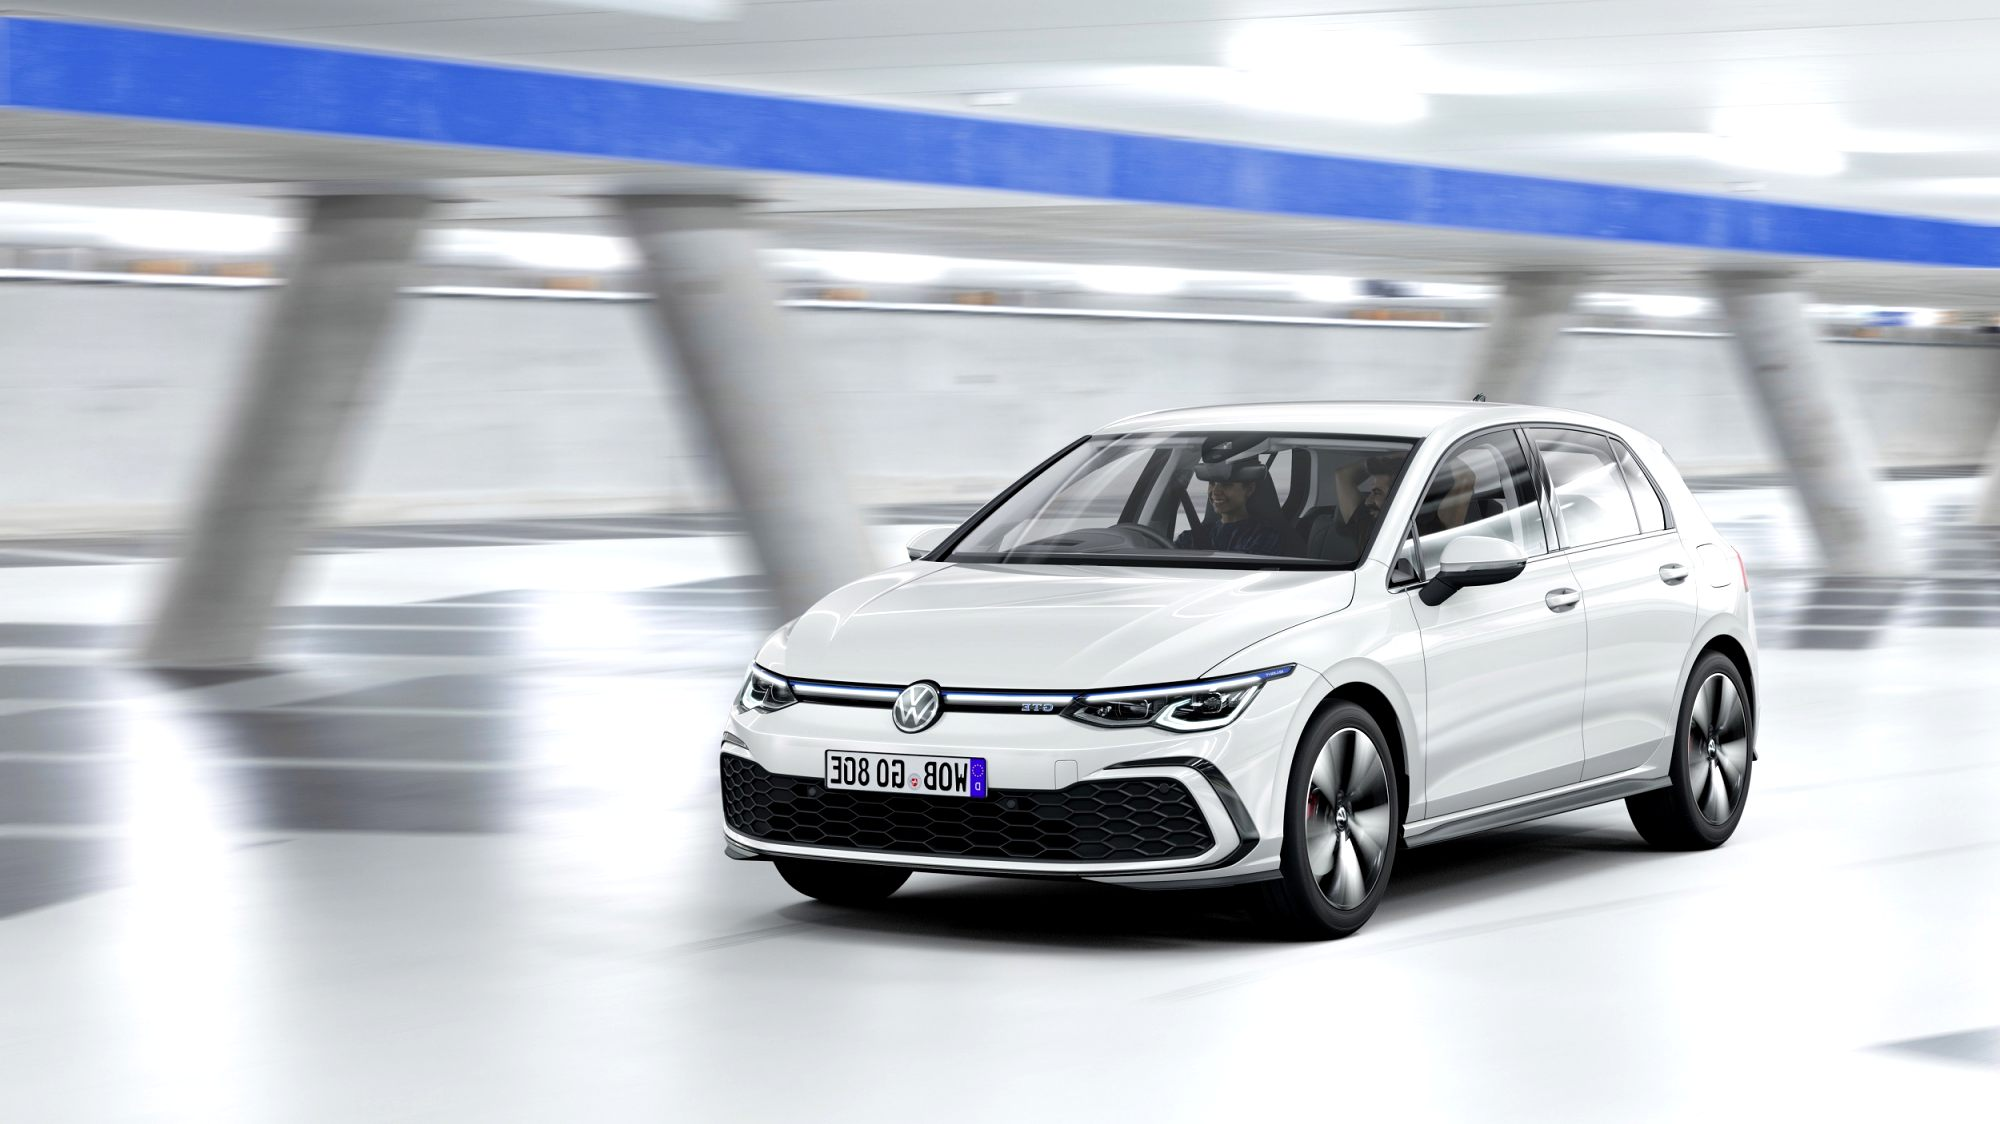 2020 volkswagen incentives Research New